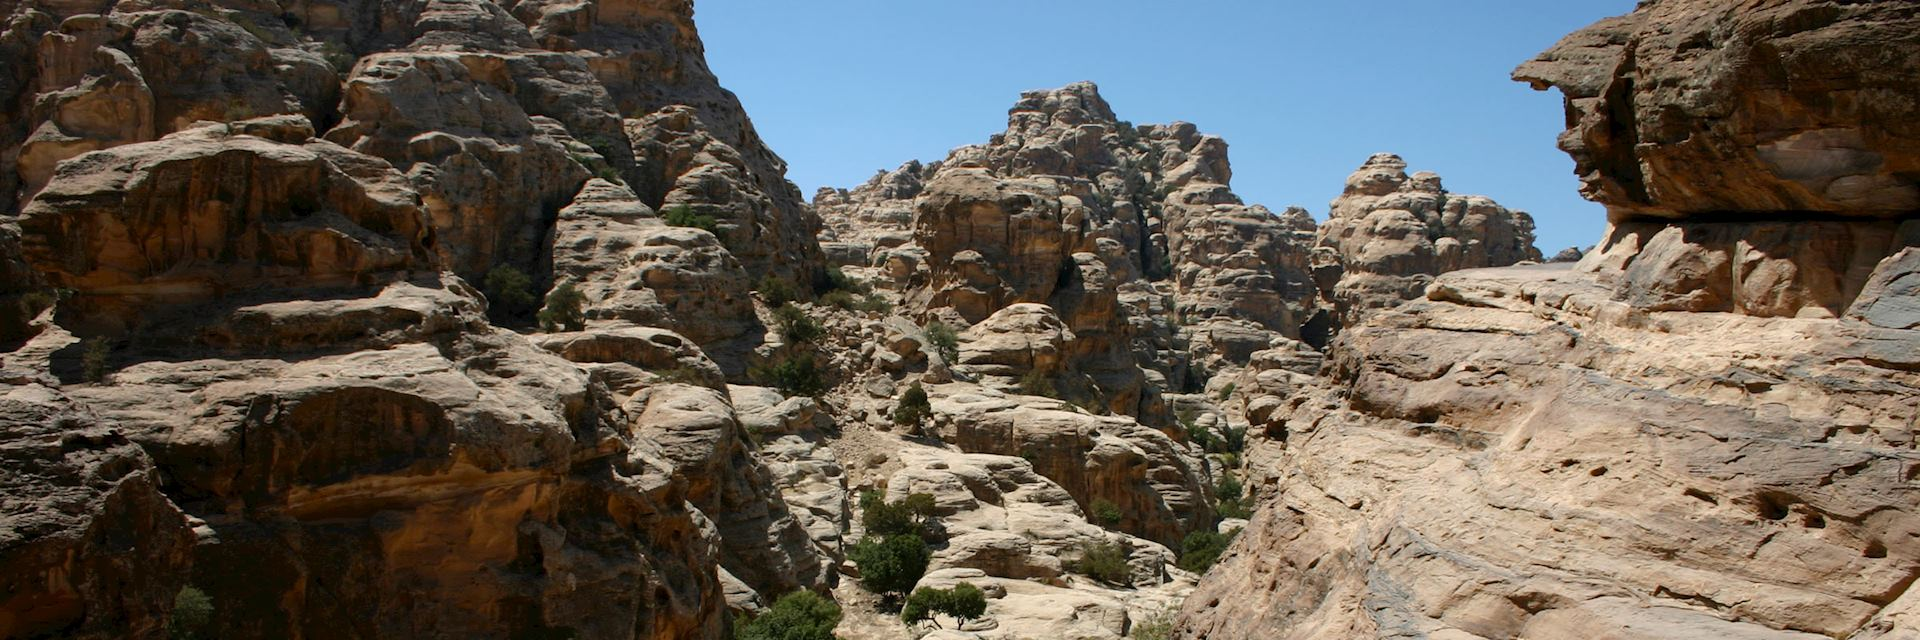 Valley near Little Petra, Jordan